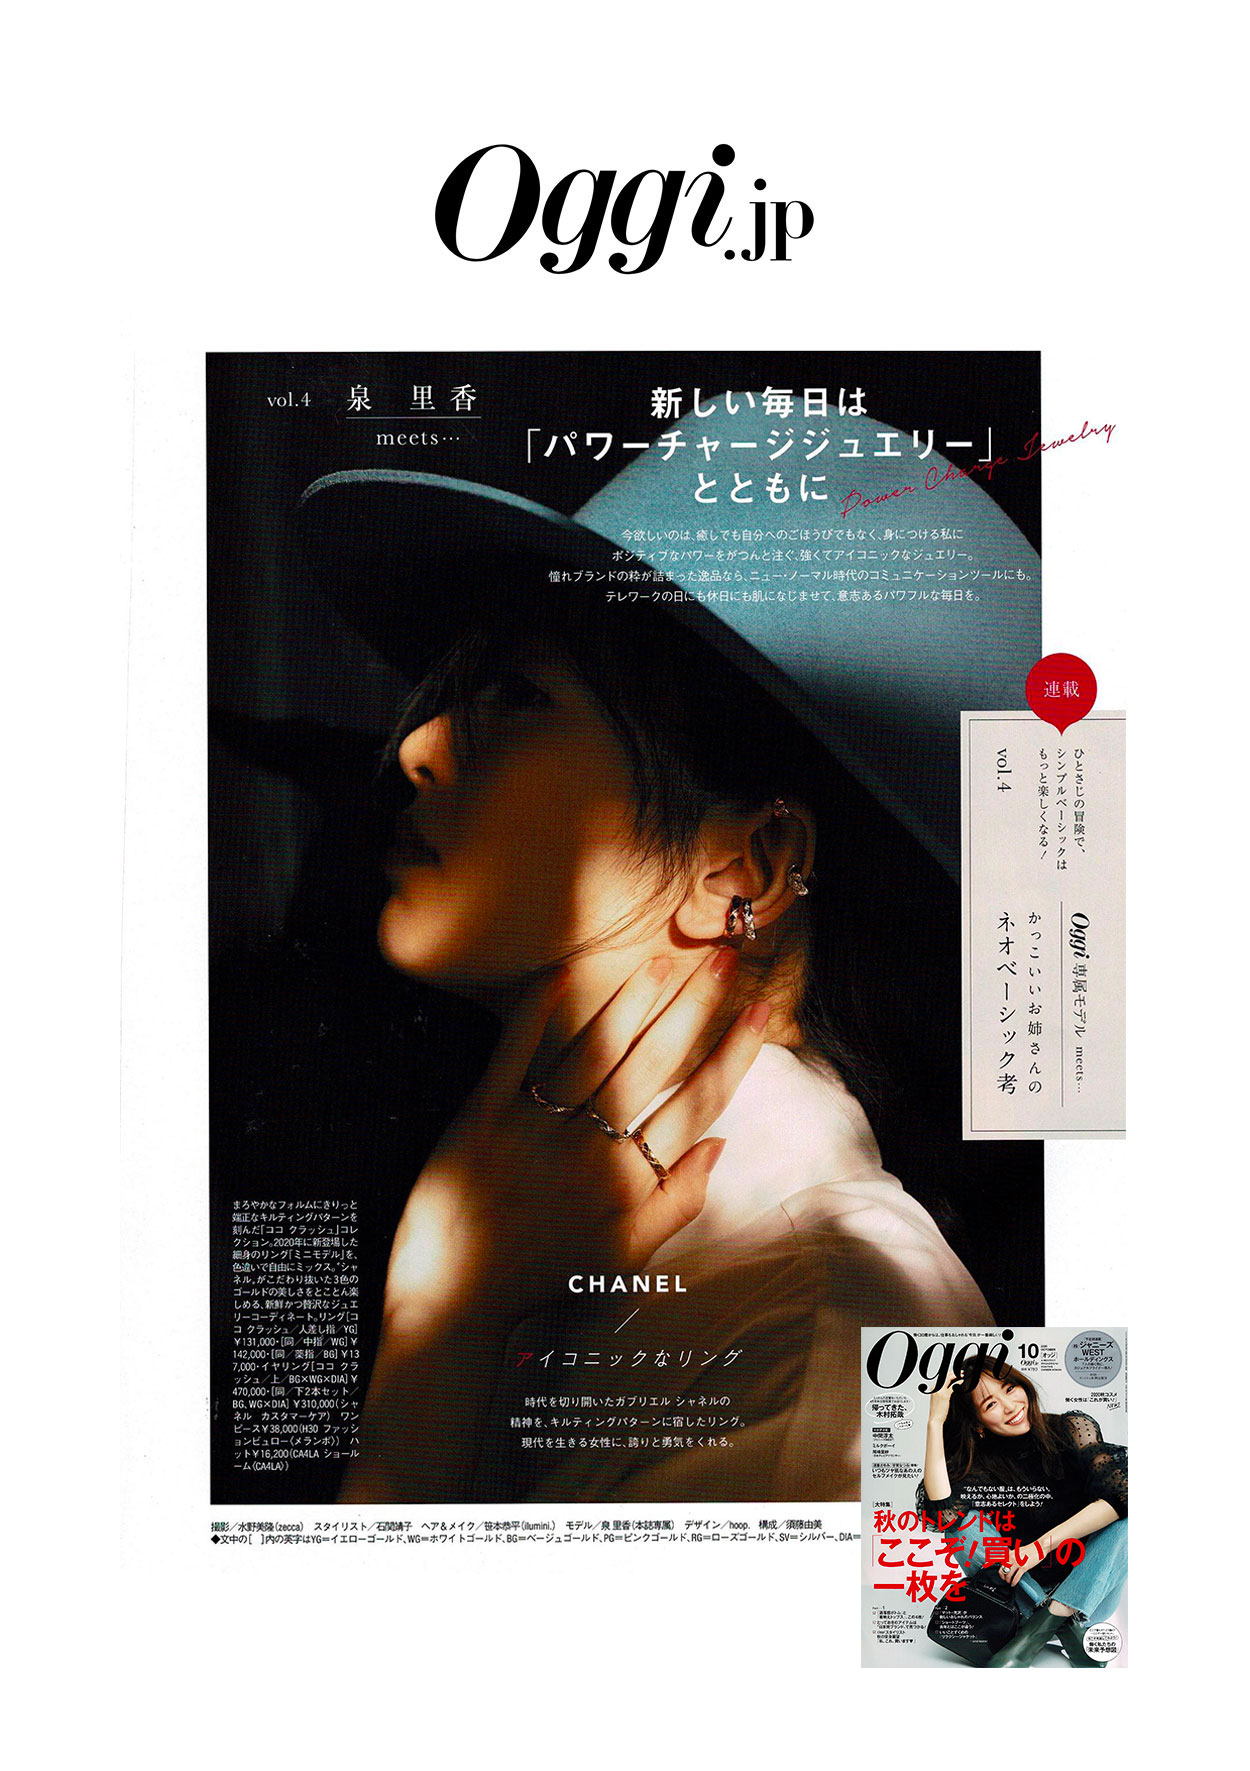 melampo-press-oggi-japan-magazine